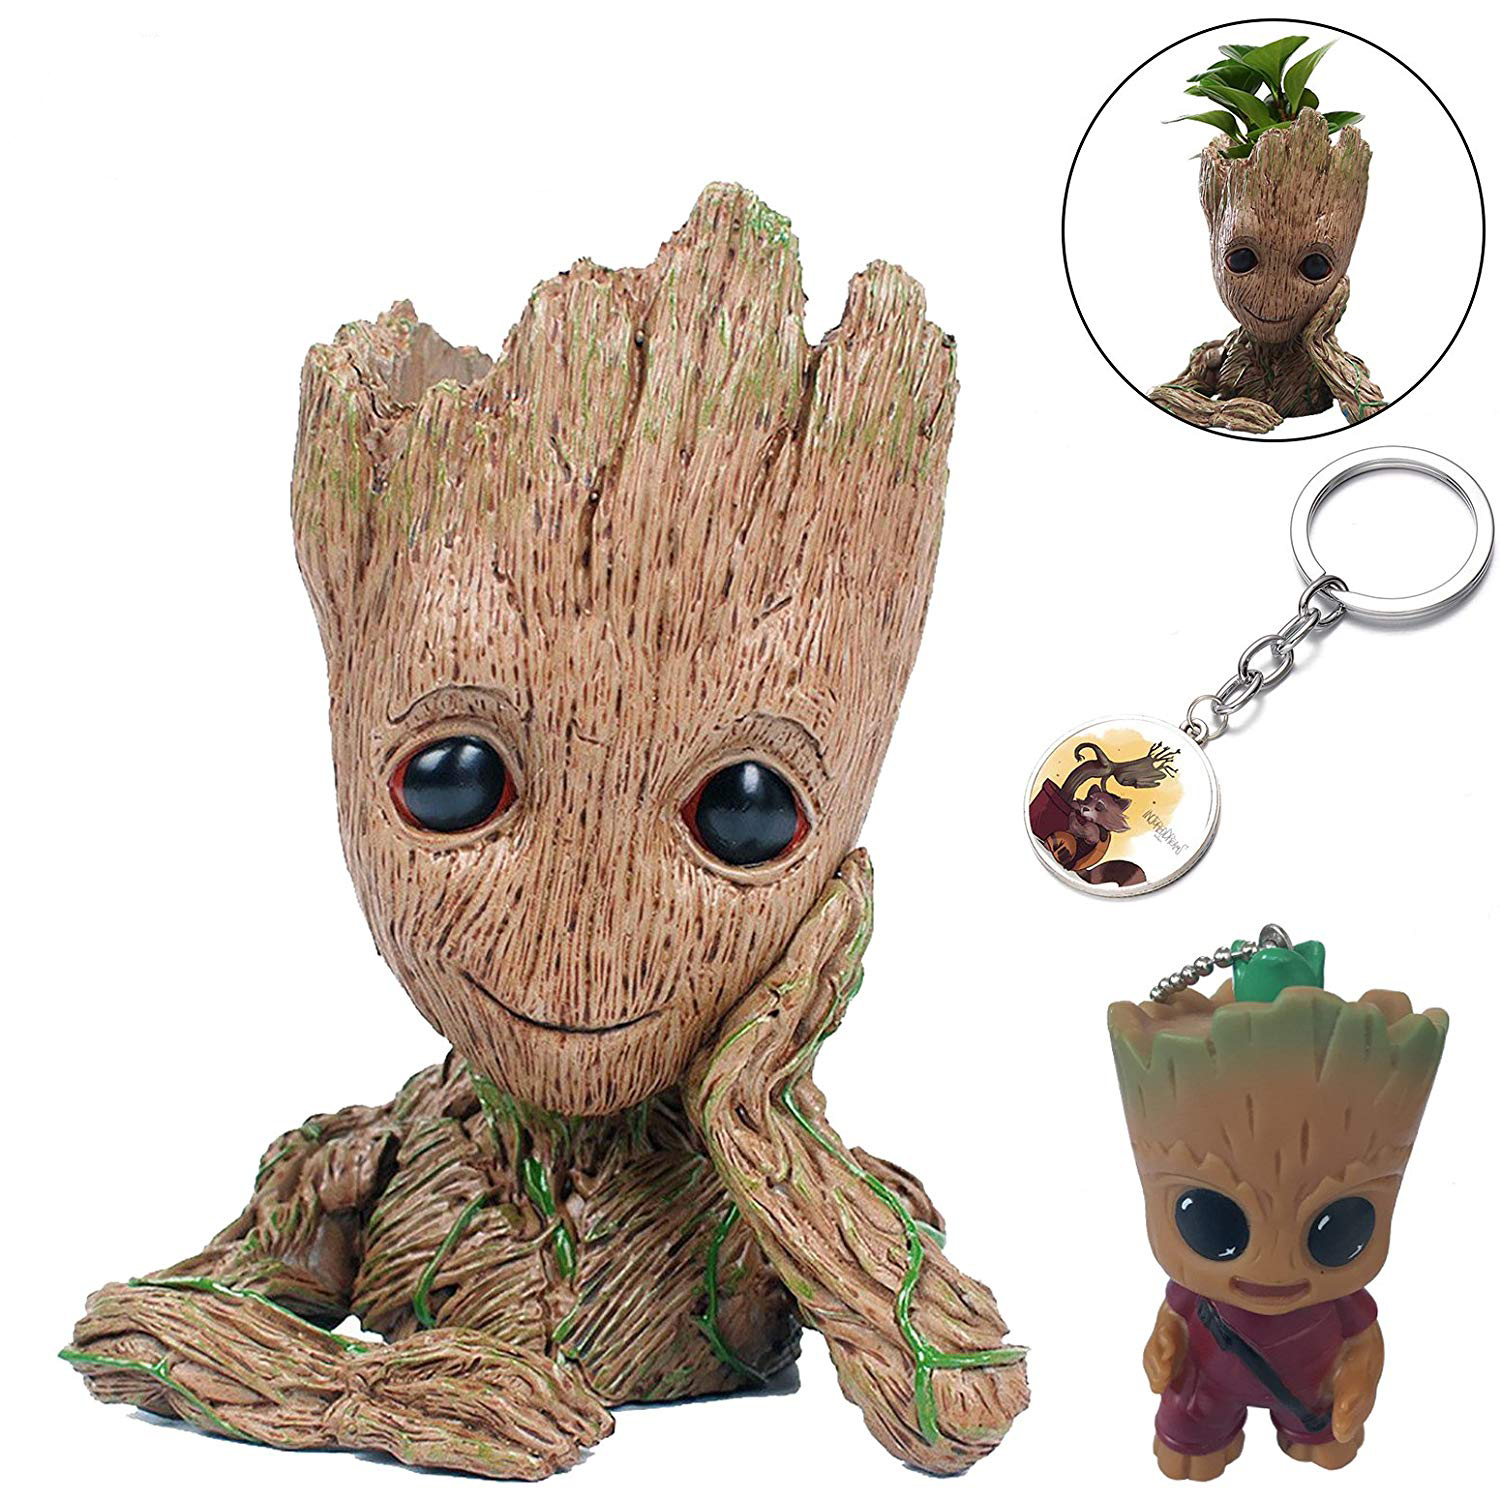 Baby Groot Action Figures Guardians of The Galaxy Flowerpot Baby Cute Model Toy